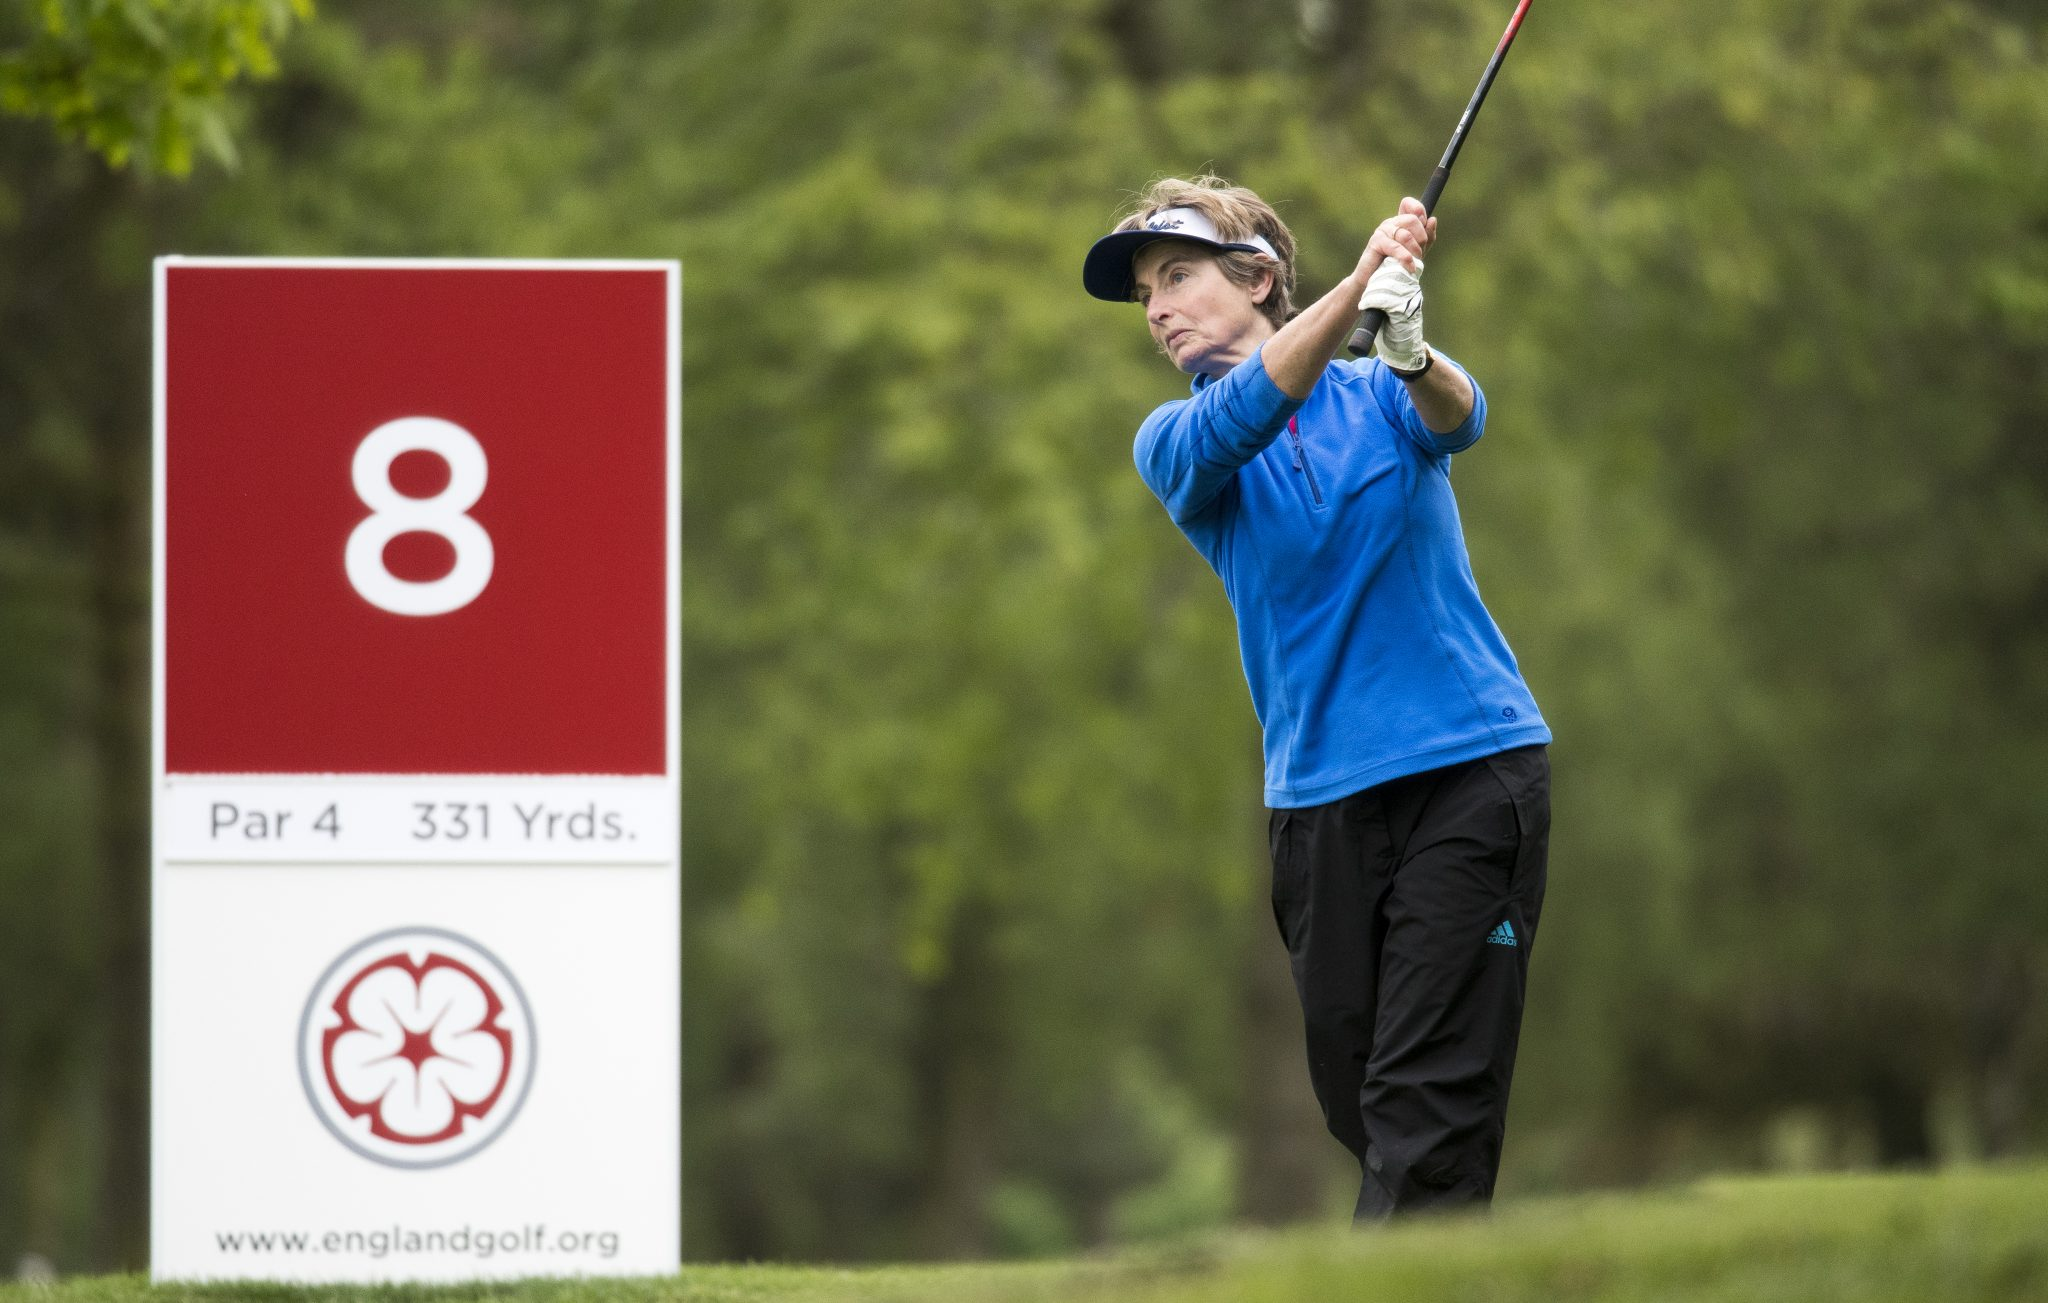 All go for Sligo – England Senior Ladies ready for Irish links test